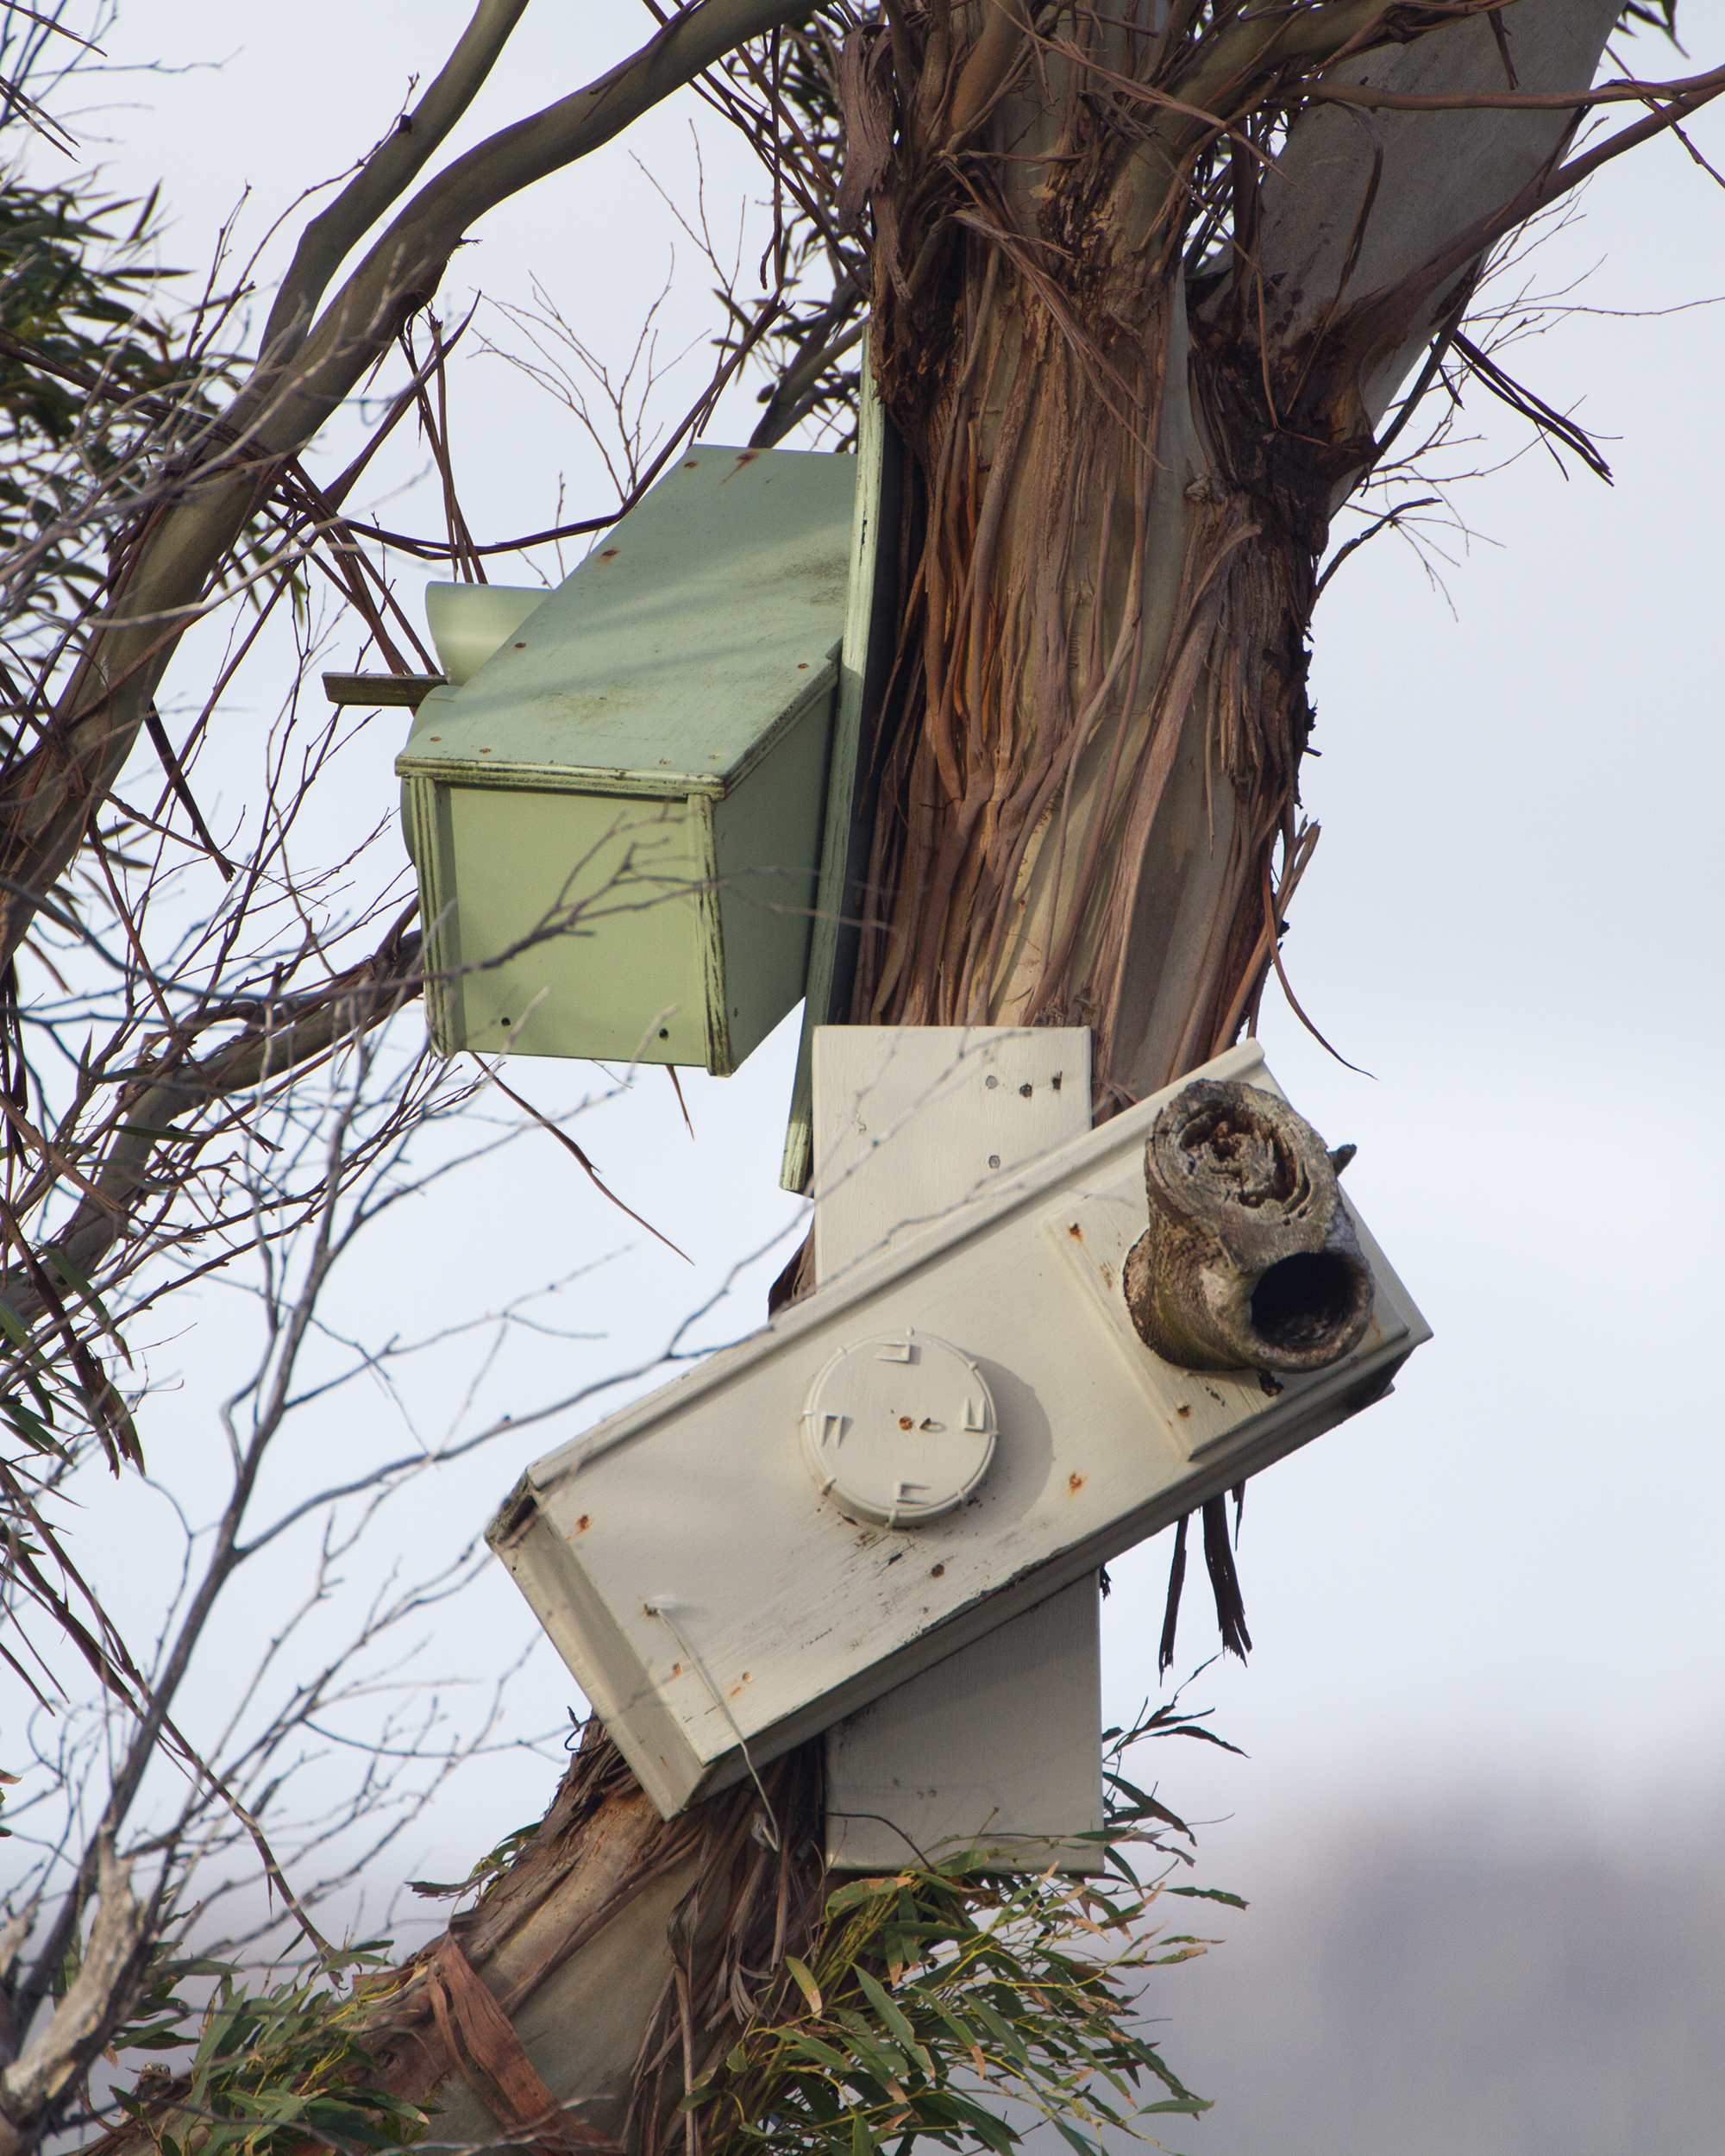 Nesting boxes intended for use by the Orange-bellied Parrot (Neophema chrysogaster)